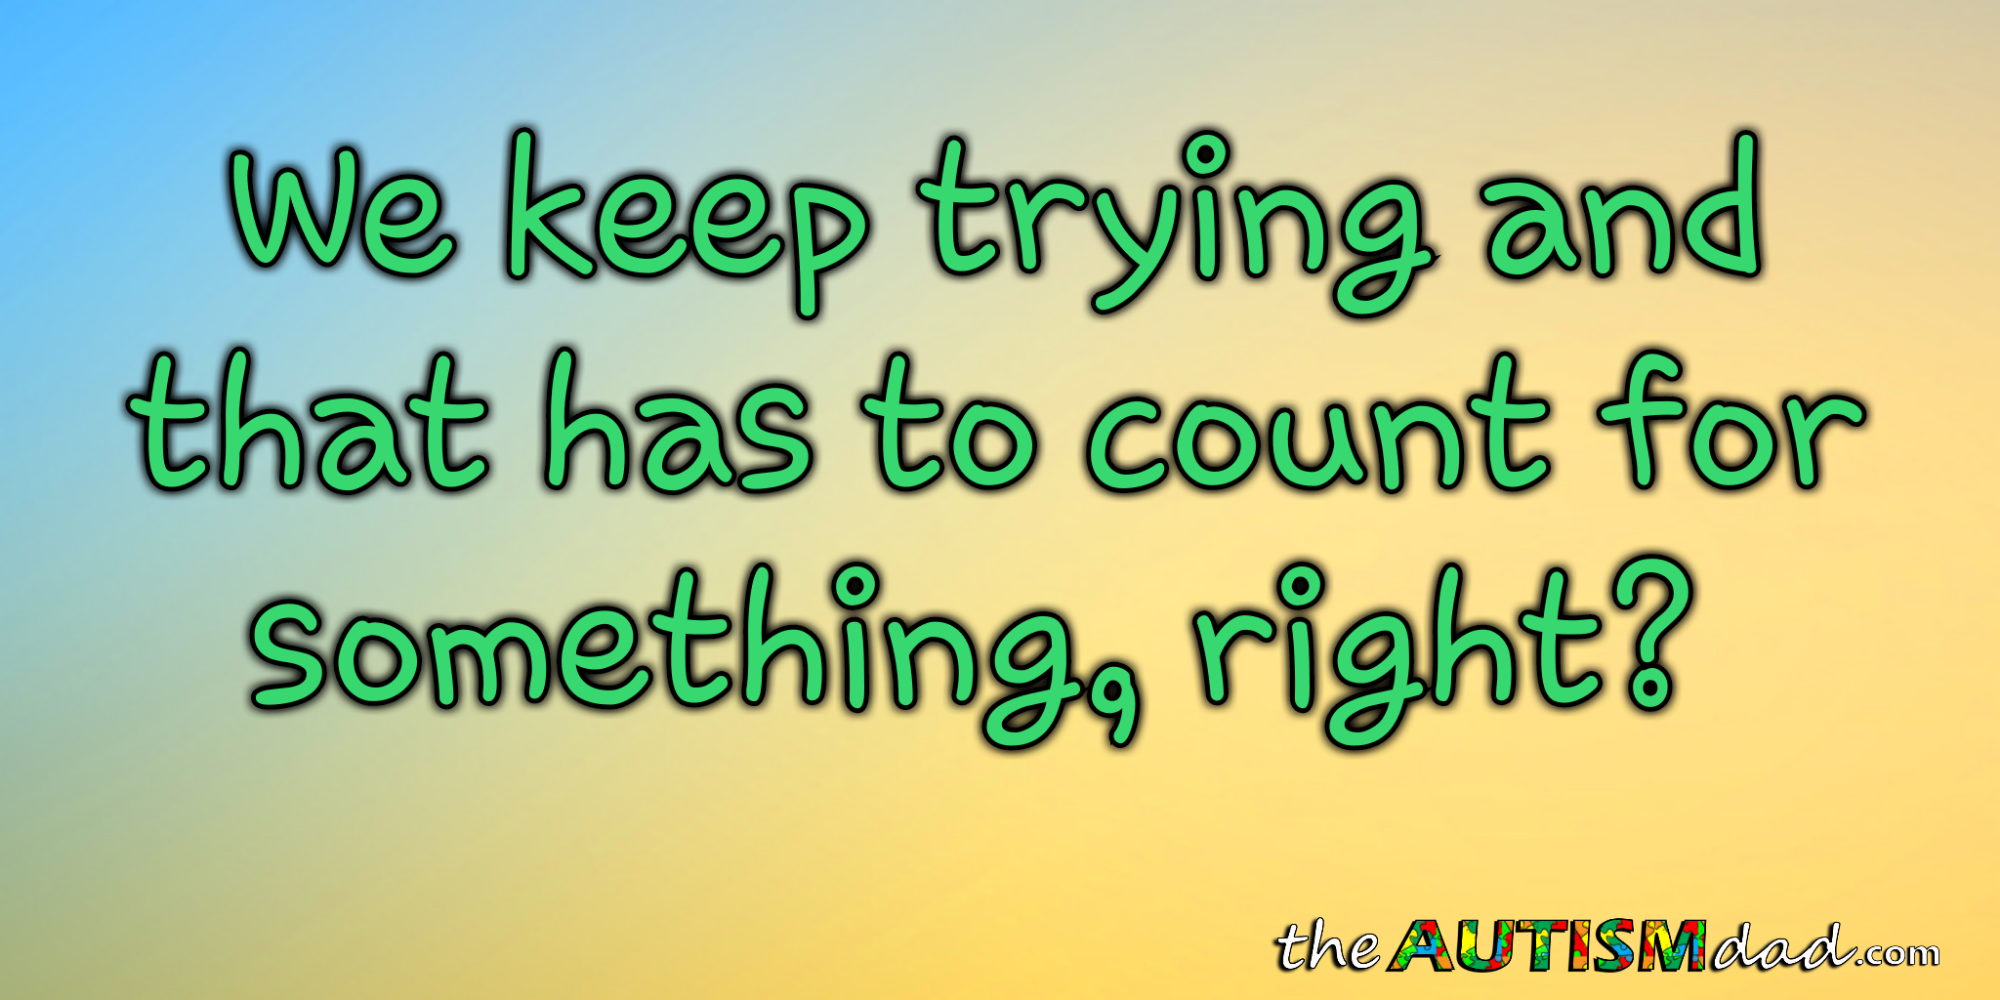 We keep trying and that has to count for something, right?